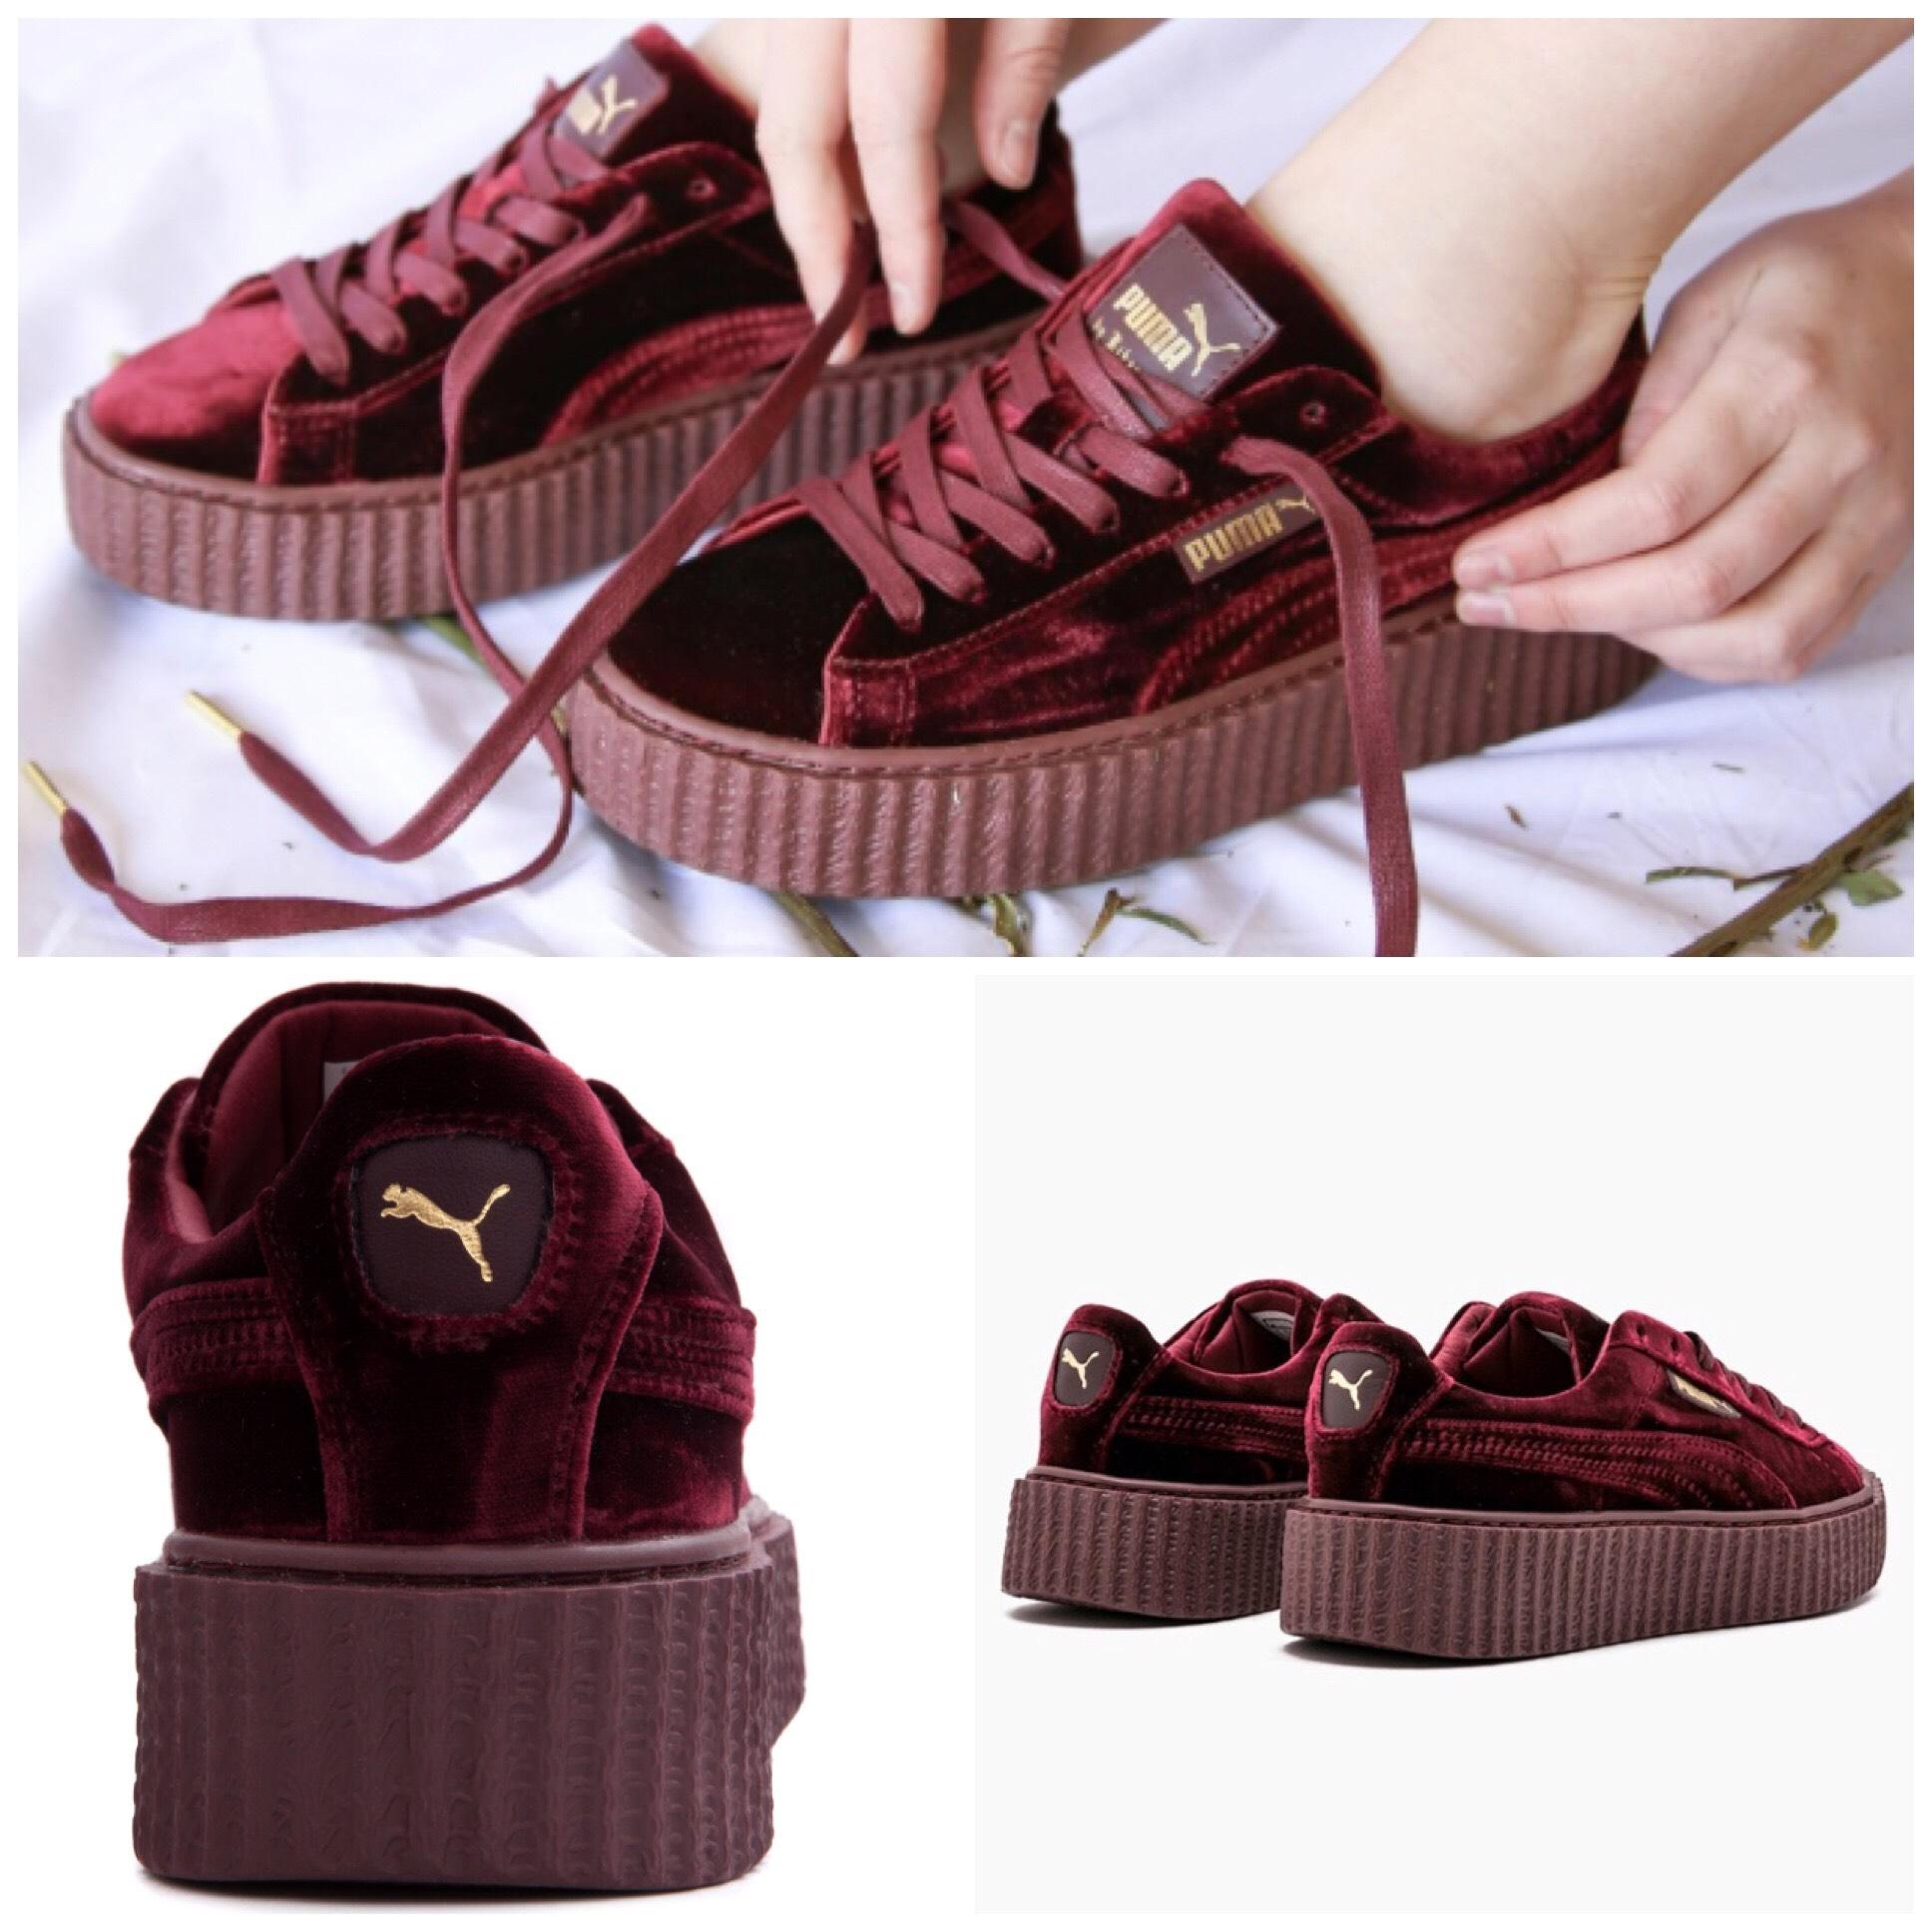 new arrival e3f87 d4a3a Sneakers Us Rihanna Velvet Size Puma Creeper Purple By Royal ...